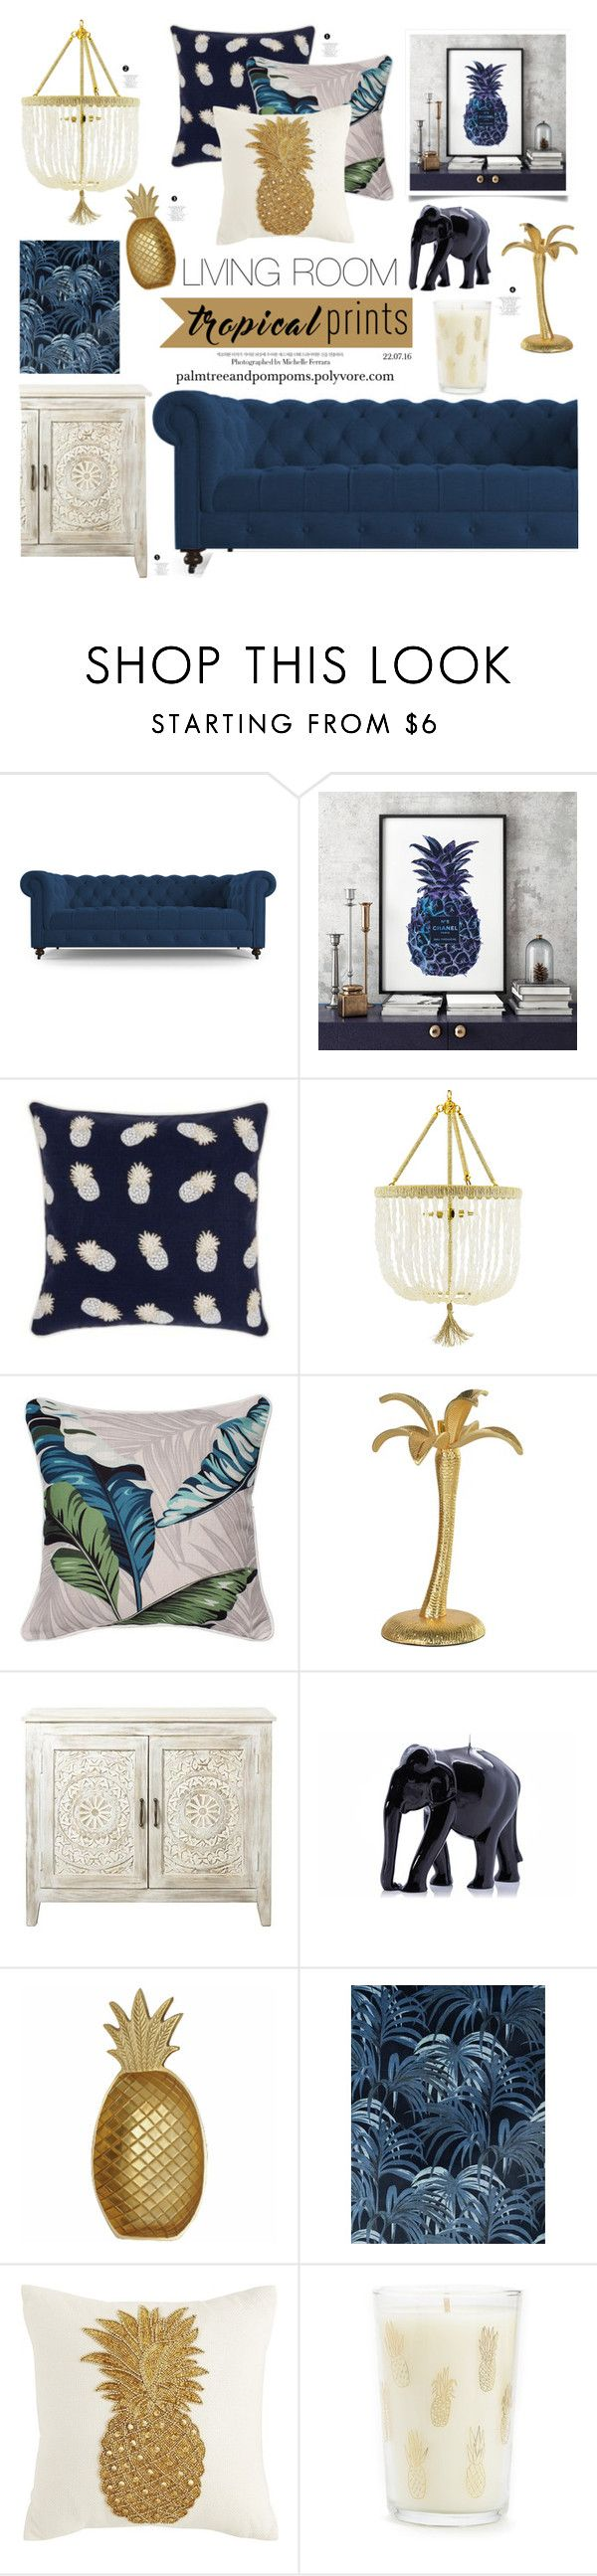 Tropical Prints By Palmtreesandpompoms Liked On Polyvore Featuring Interior Interiors Interior Design Home Home Decor Interior Decorating Chanel